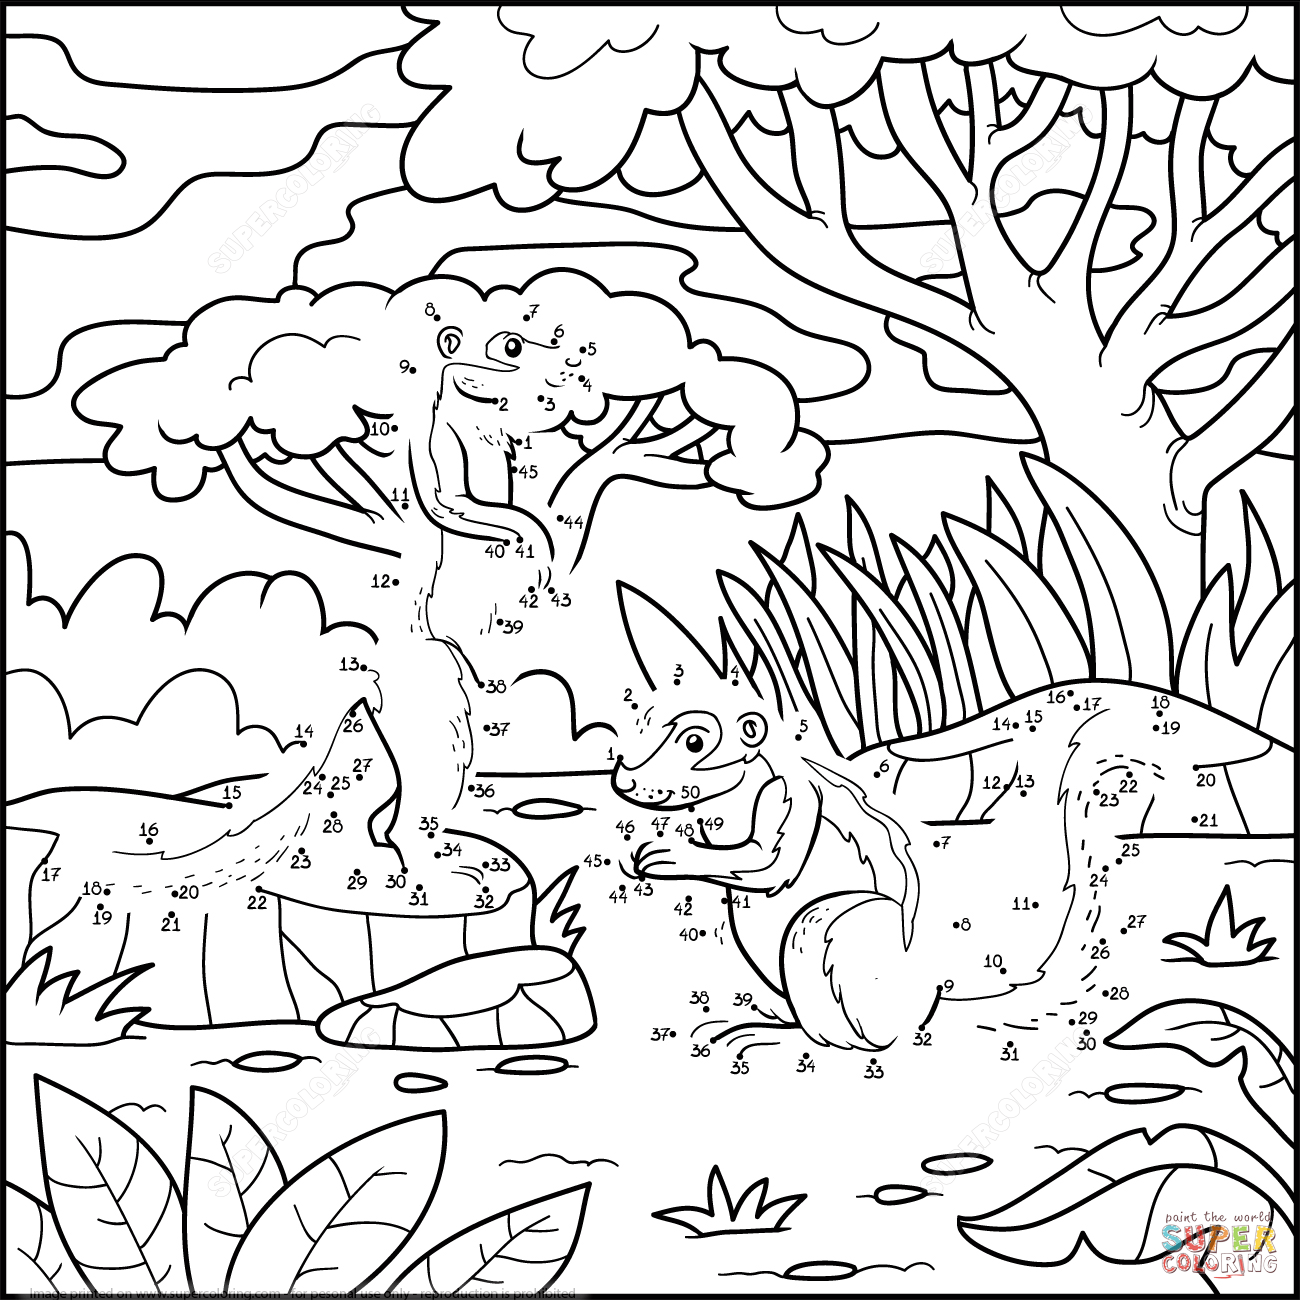 Squirrels In A Forest Dot To Dot